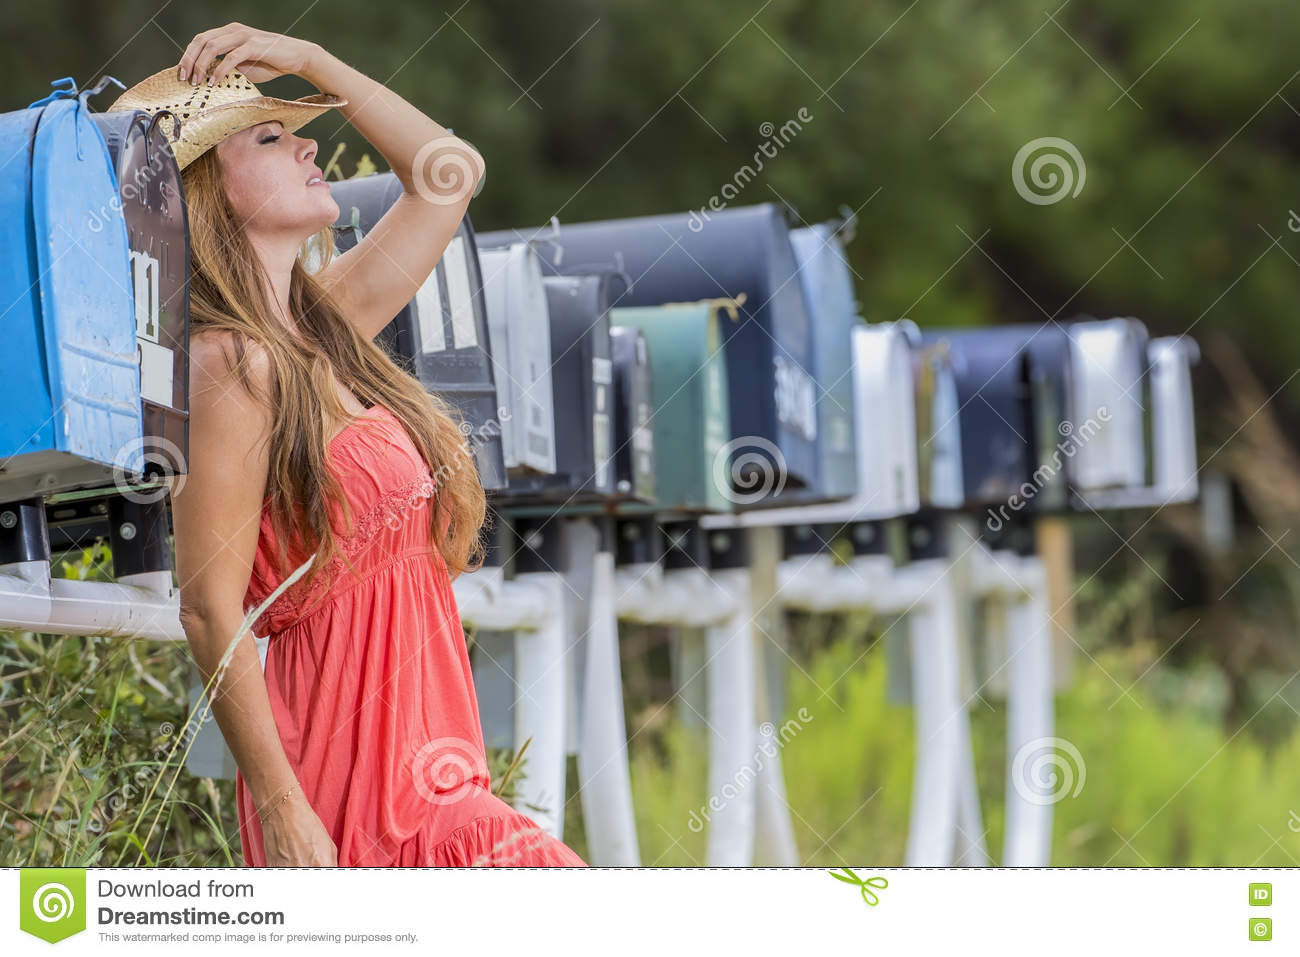 Waiting For Mail >> Brunette Model Waiting For The Mail Stock Image Image Of Girl